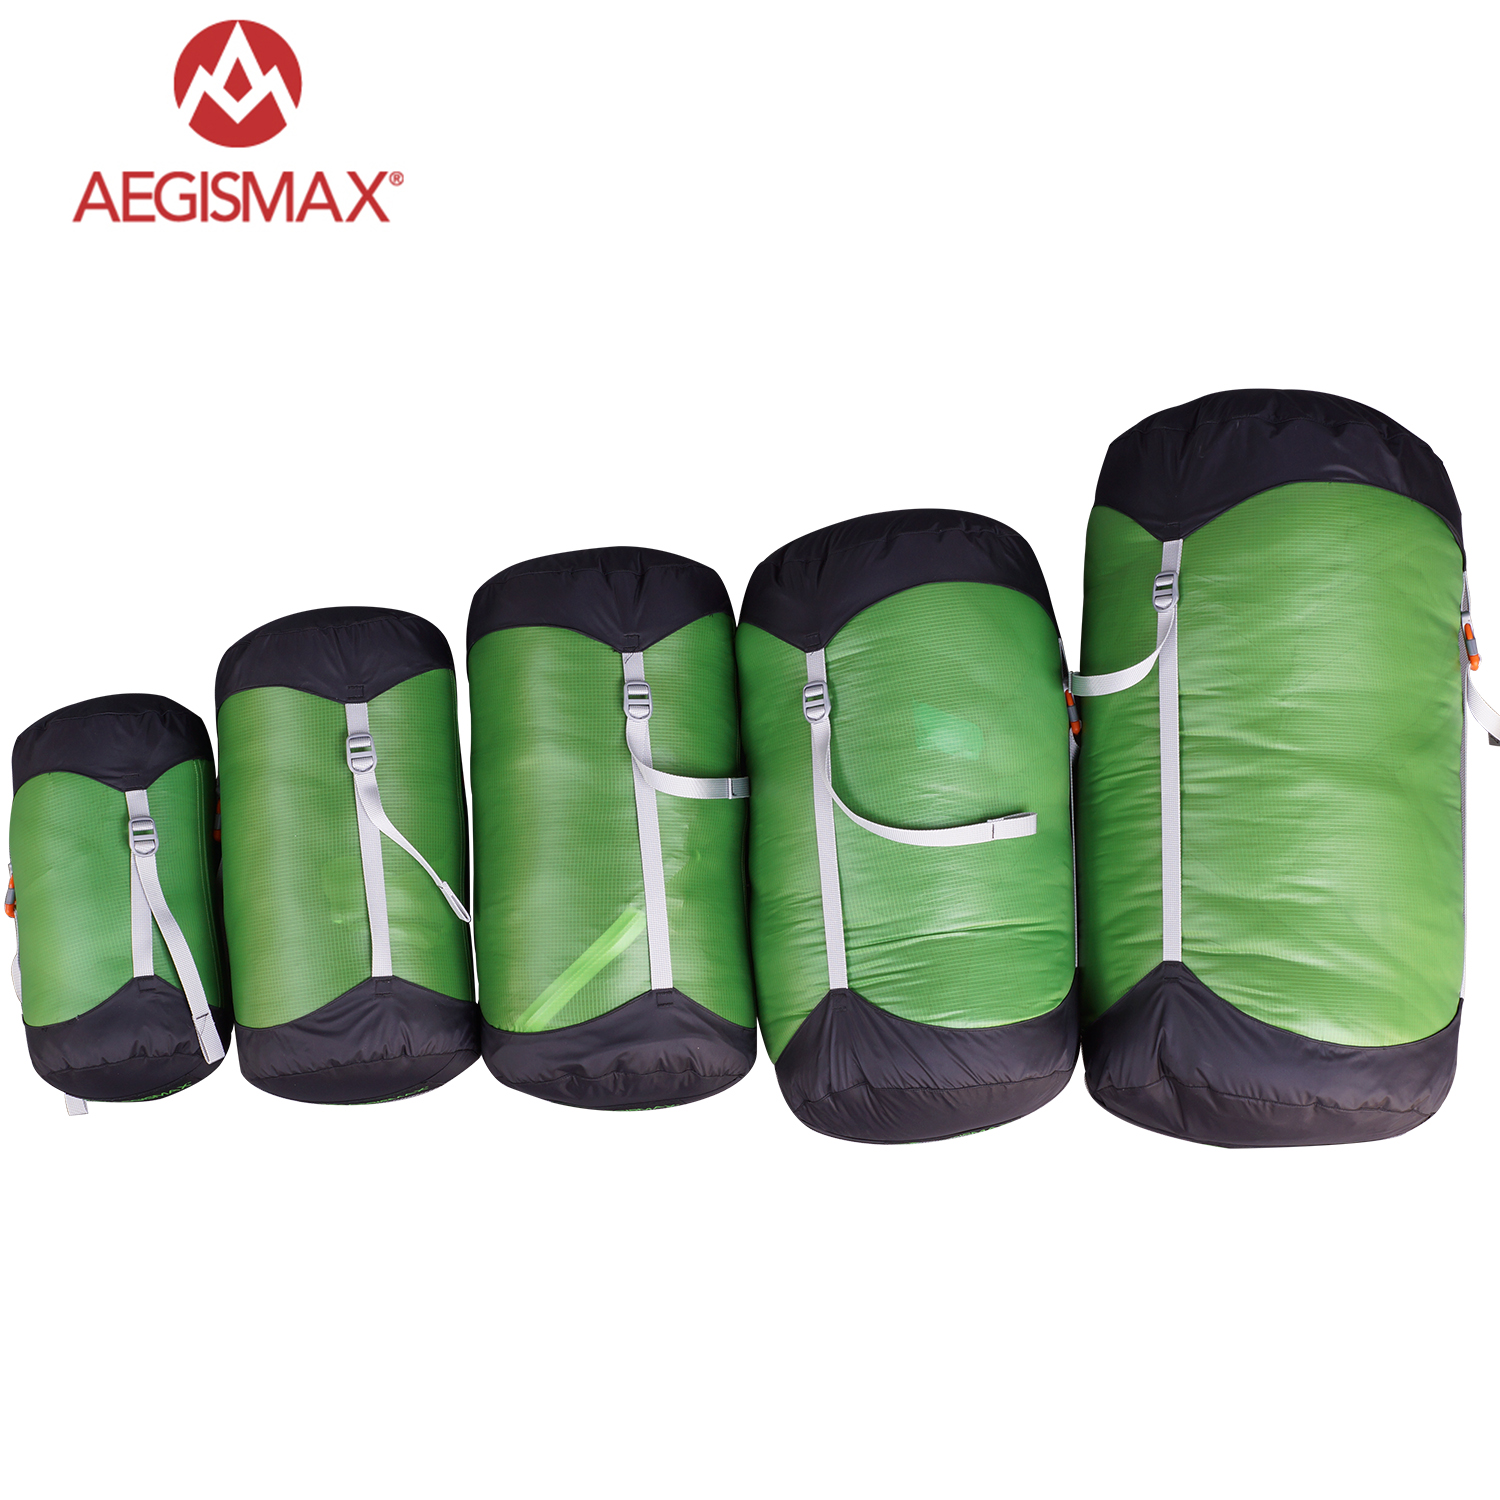 AEGISMAX Outdoor Sleeping Bag Pack Compression Stuff Sack Storage Carry Bag Sleeping Bag Accessories Camping Hiking Outdoor цена